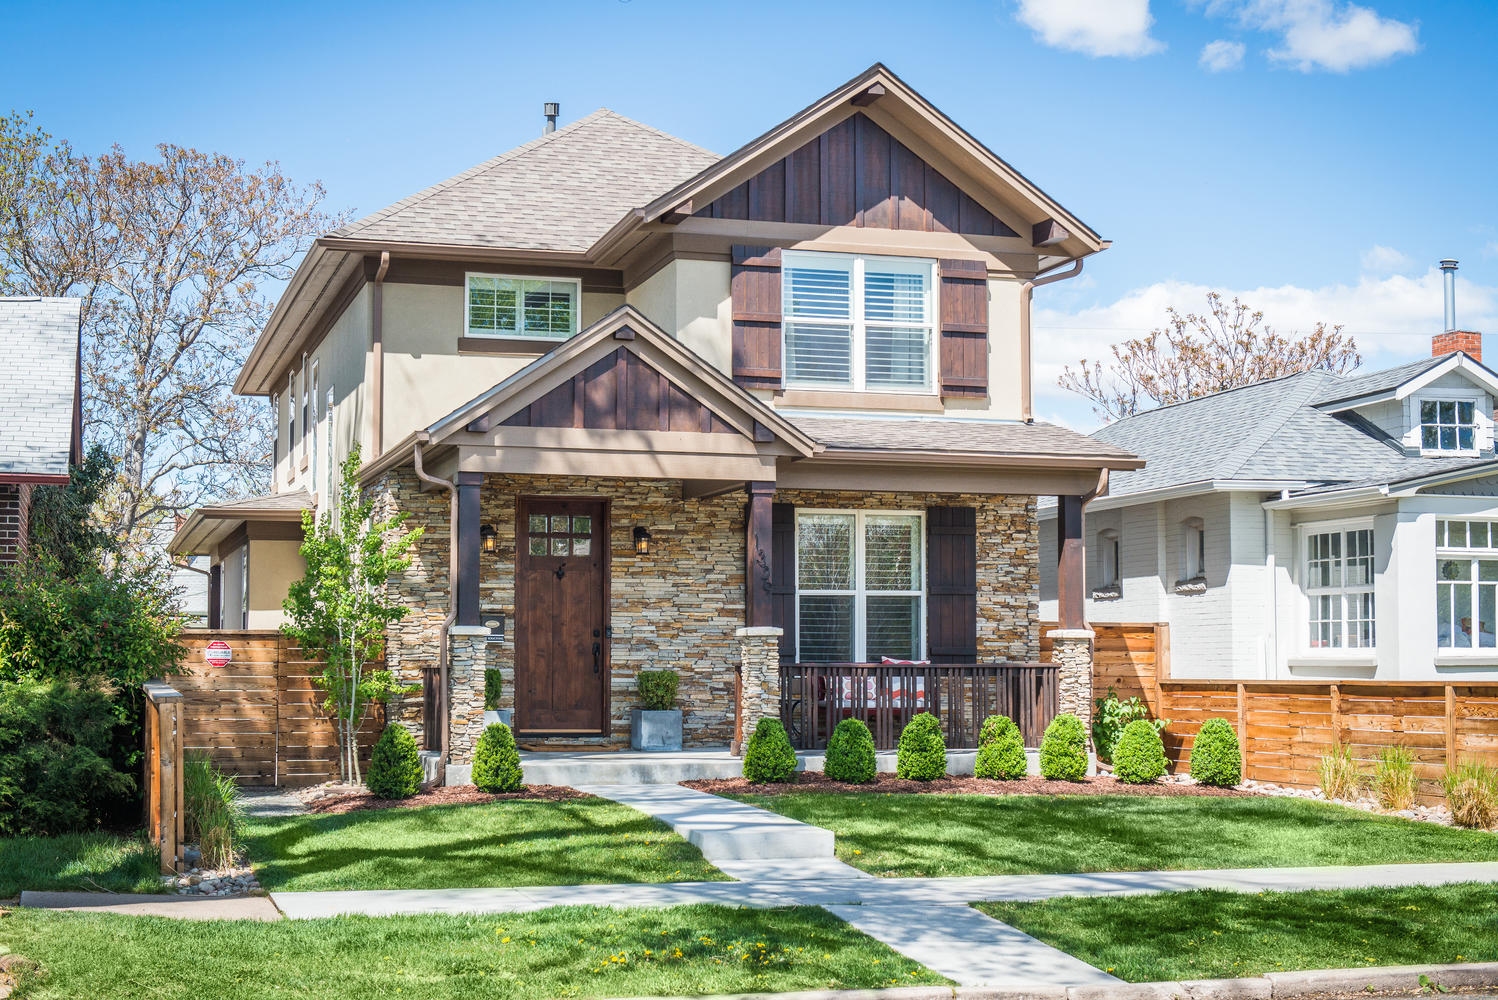 Single Family Home for Sale at Stunning Newer Build Contemporary Home 1329 South Sherman Street Denver, Colorado, 80210 United States